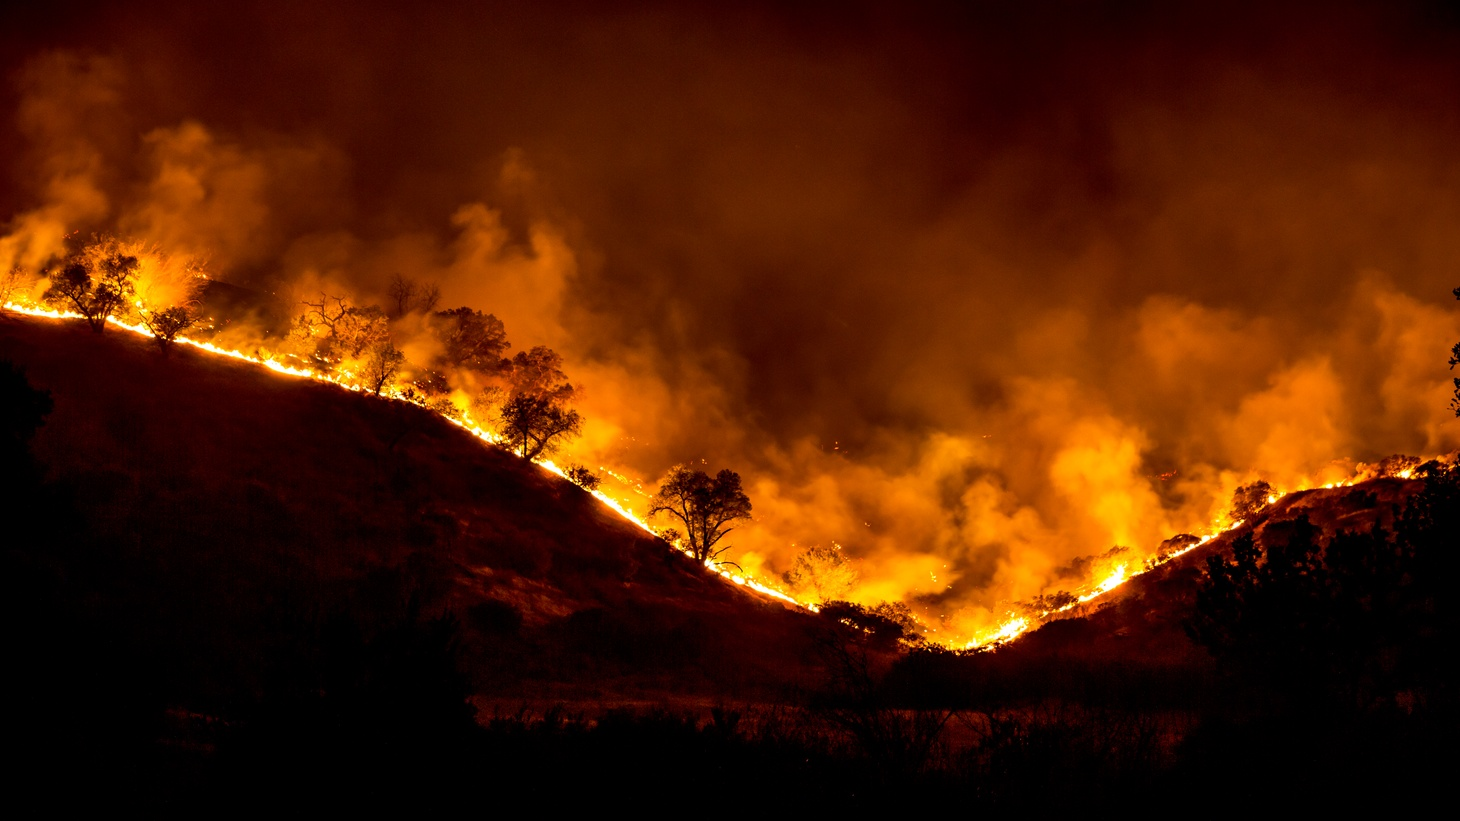 New Emergency Preparedness Procedures Necessary as California Wildfires Worsen